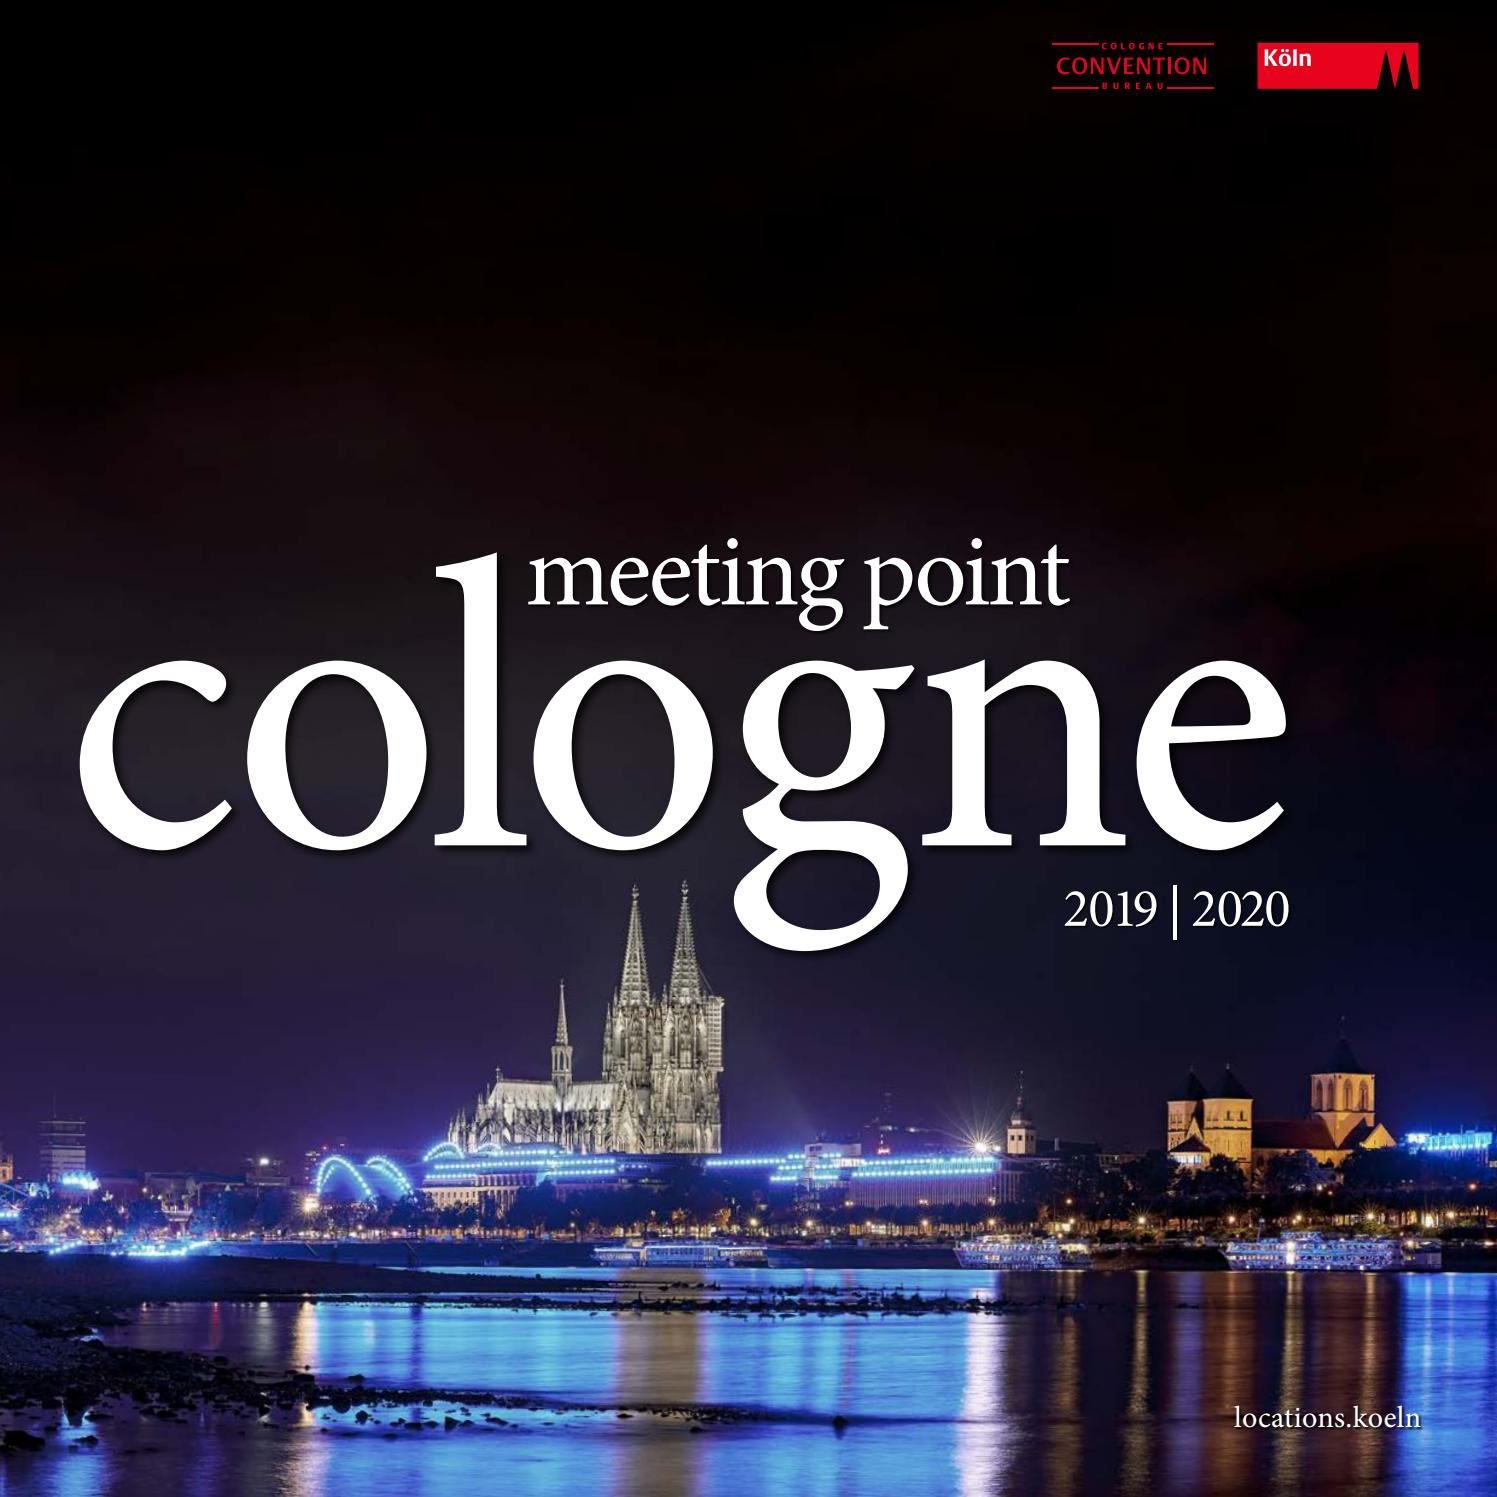 Meeting Point Cologne 2019 2020 By Kölntourismusgmbh Issuu